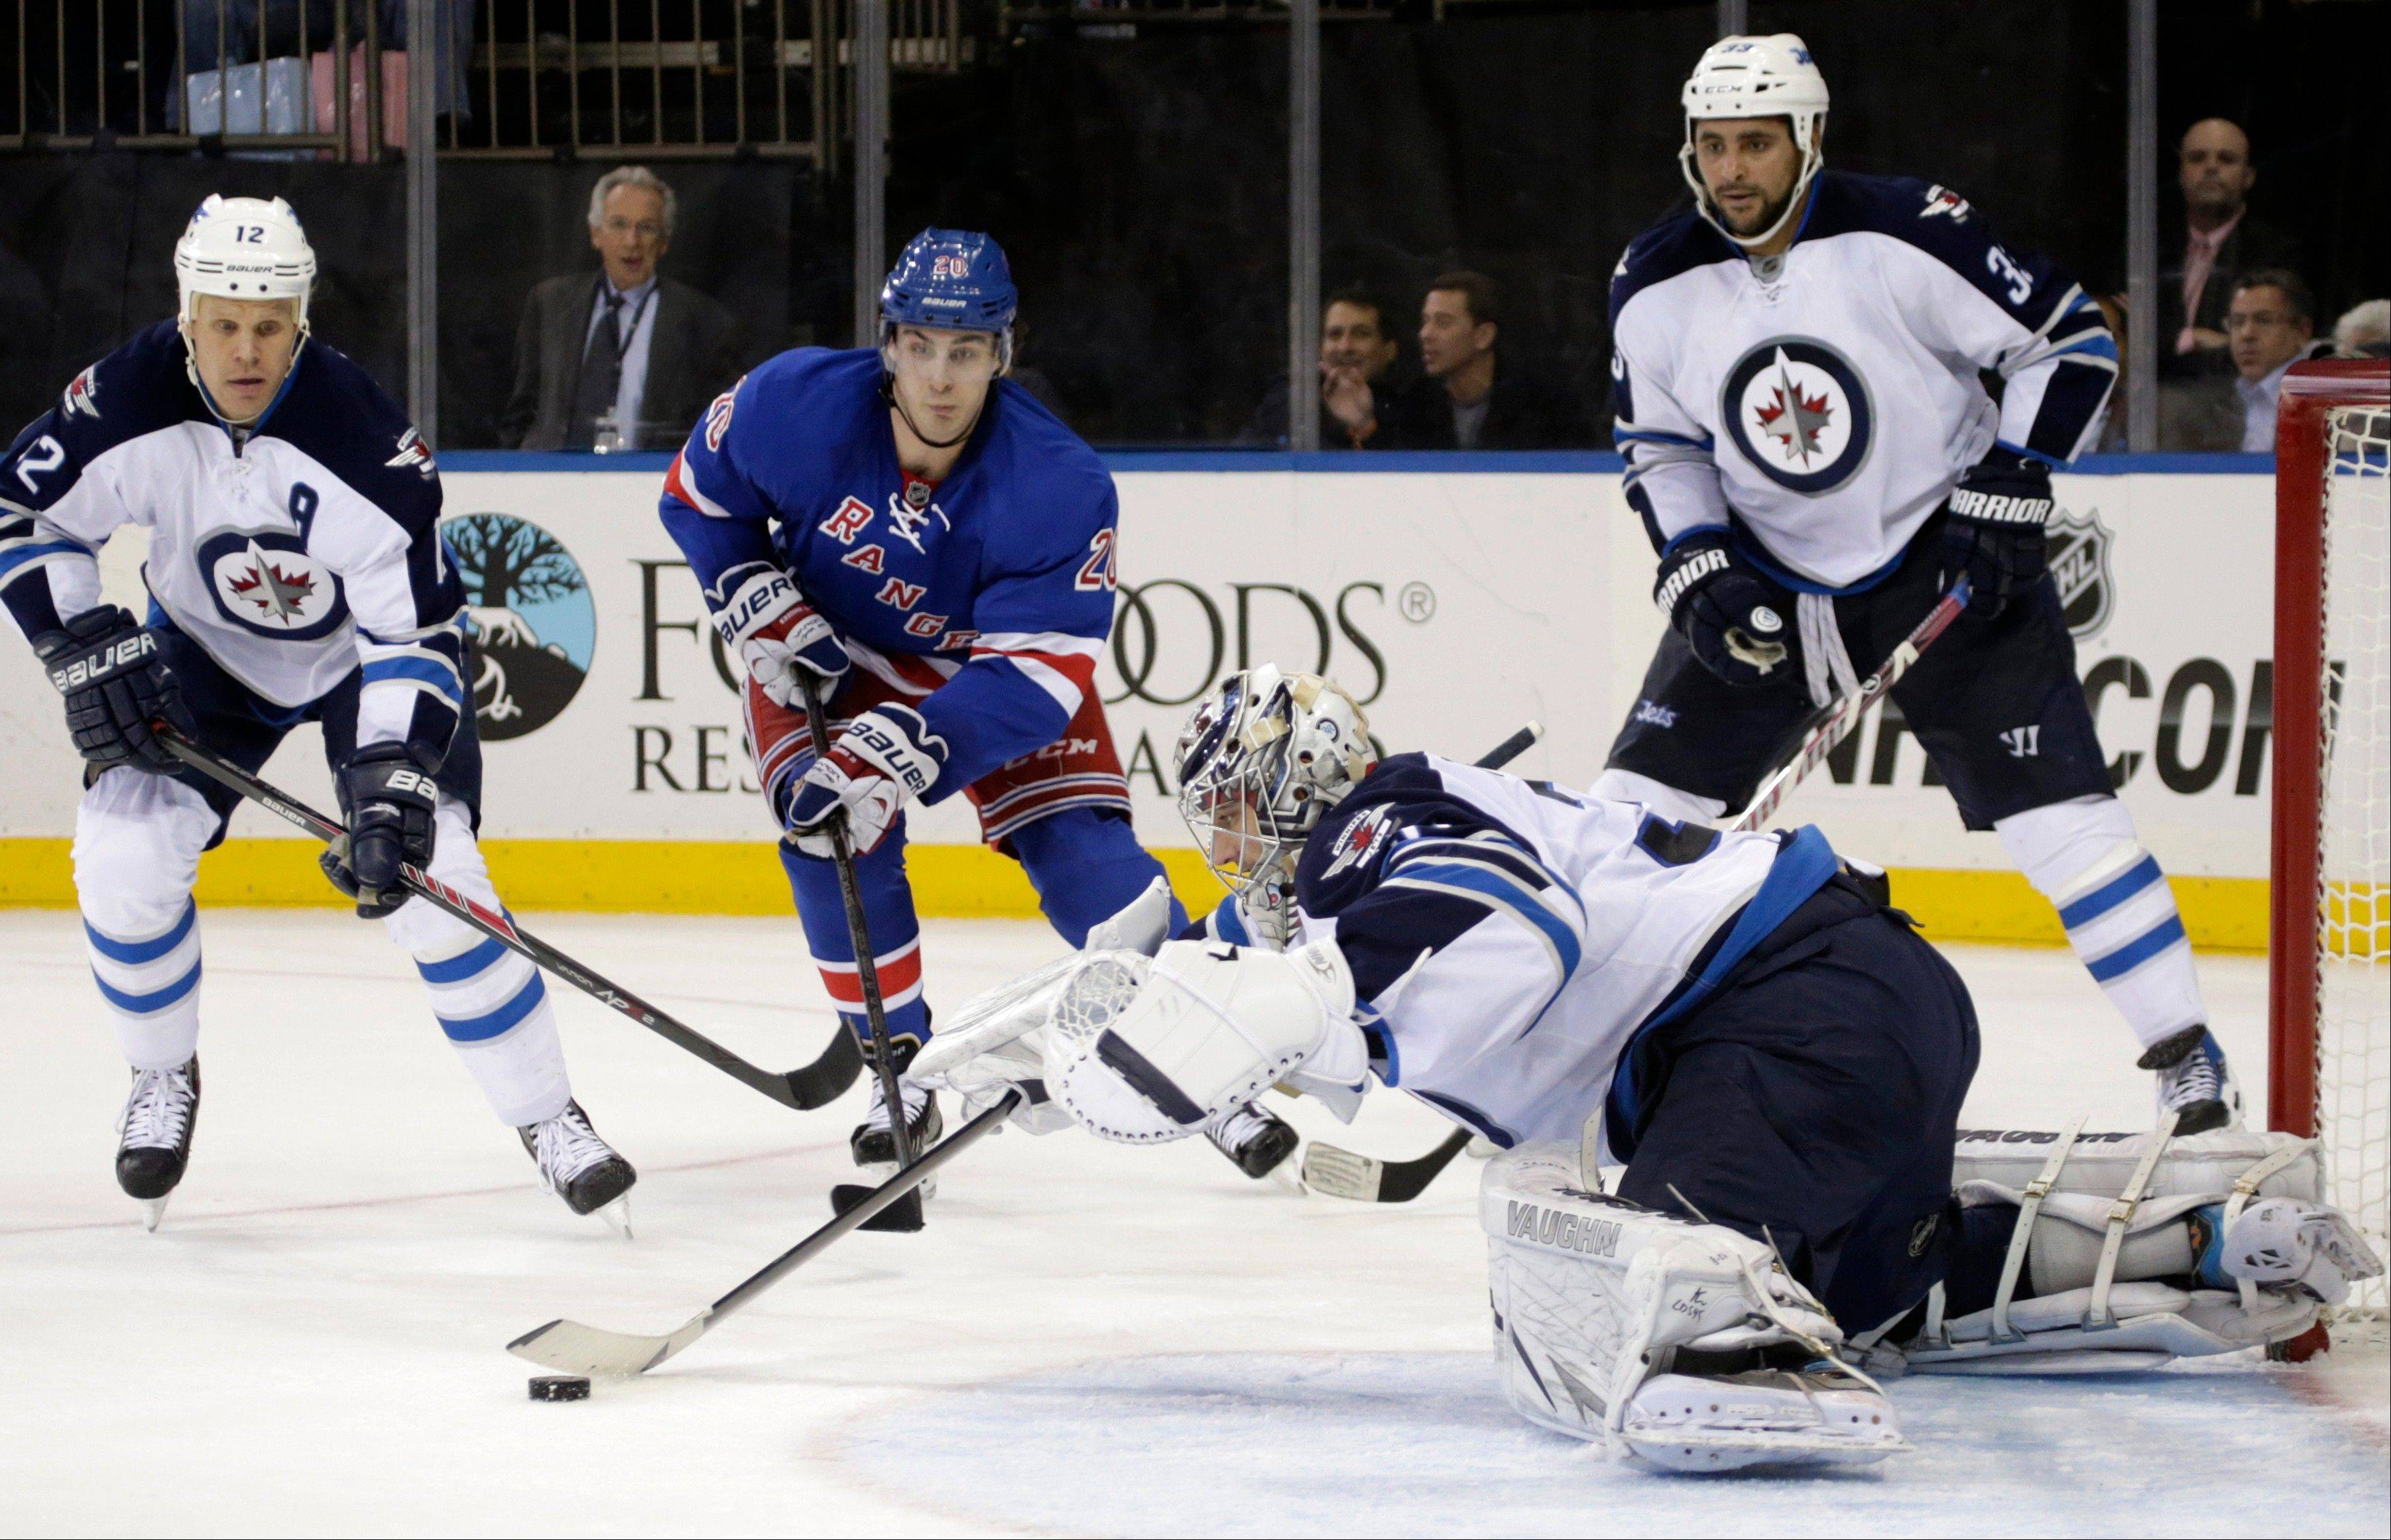 Winnipeg Jets goalie Ondrej Pavelec (31) of the Czech Republic makes a save as Winnipeg Jets center Olli Jokinen (12) of Finland defends and New York Rangers left wing Chris Kreider (20) skates toward the goal in the second period of their NHL hockey game Monday in New York.